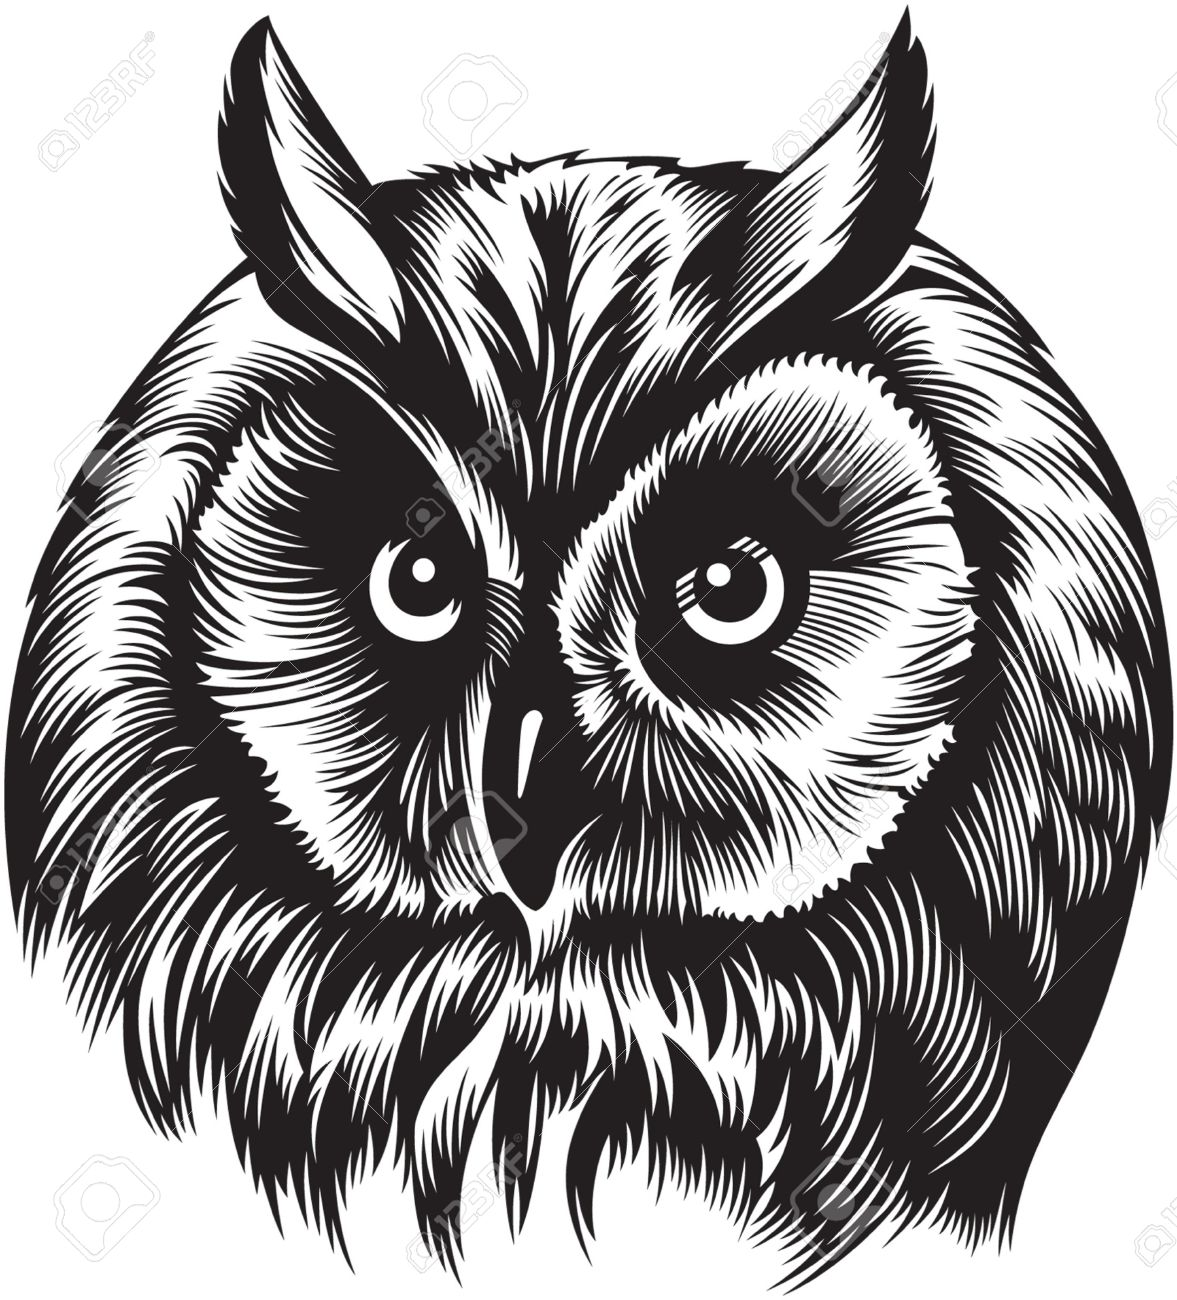 owl bird head black and white style royalty free cliparts